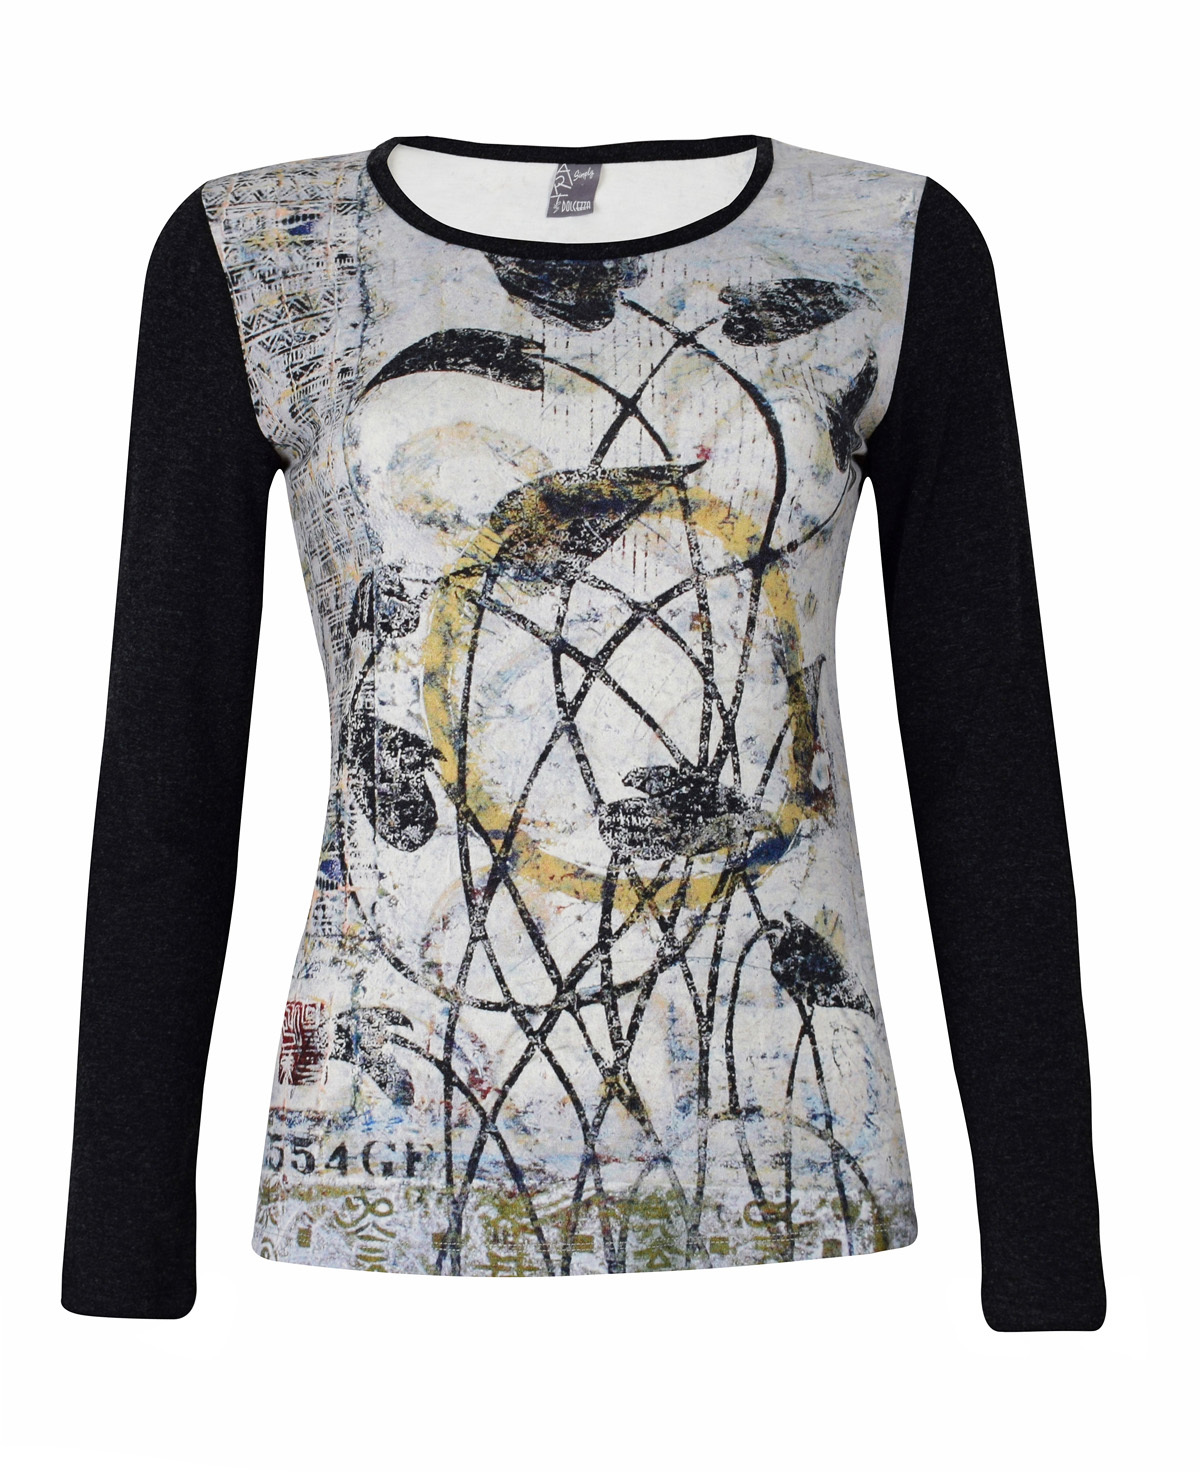 Simply Art Dolcezza: Random Acts Of Petal Beauty Abstract Art Tunic (1 Left!) Dolcezza_SimplyArt_59610